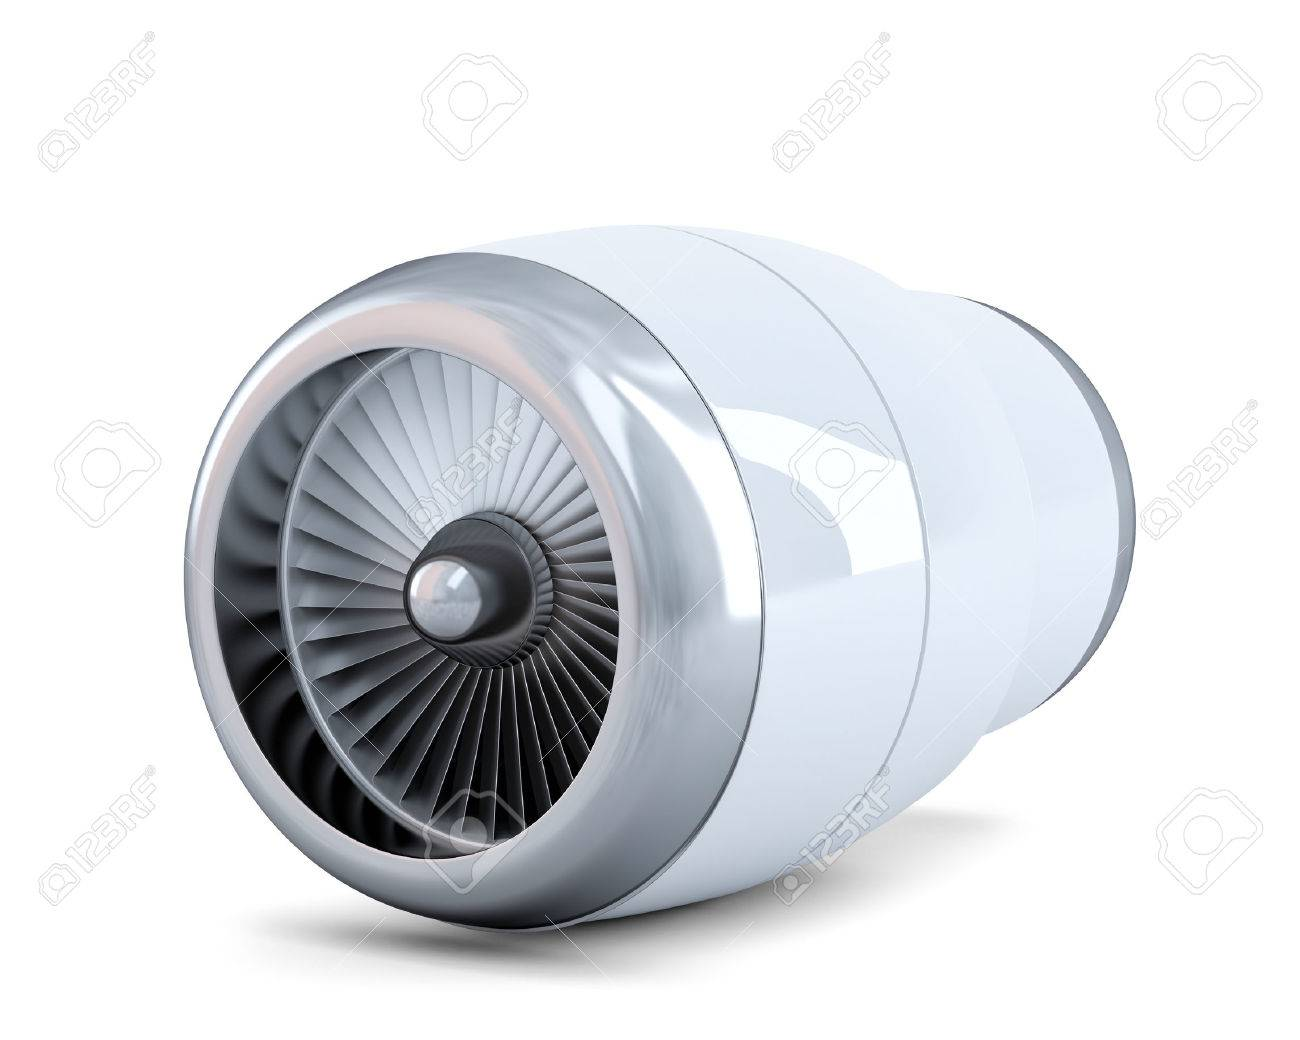 Jet engine. Isolated. Contains clipping path Standard-Bild - 28219203